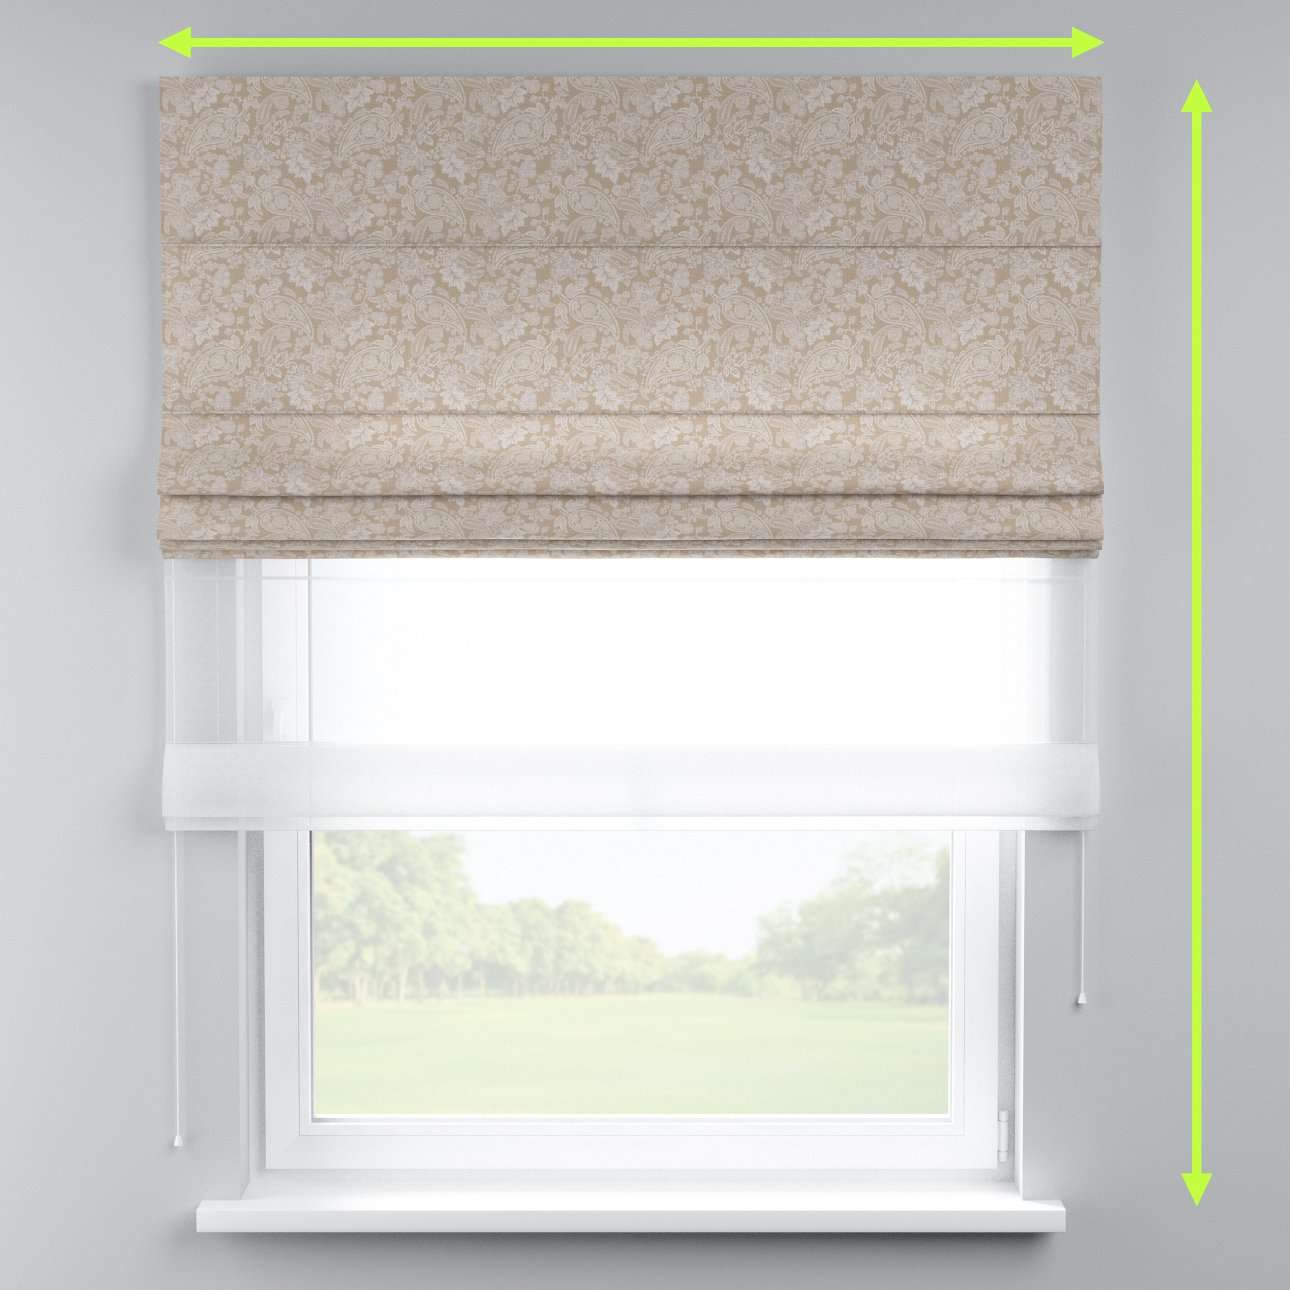 Voile and fabric roman blind (DUO II) in collection Flowers, fabric: 311-08